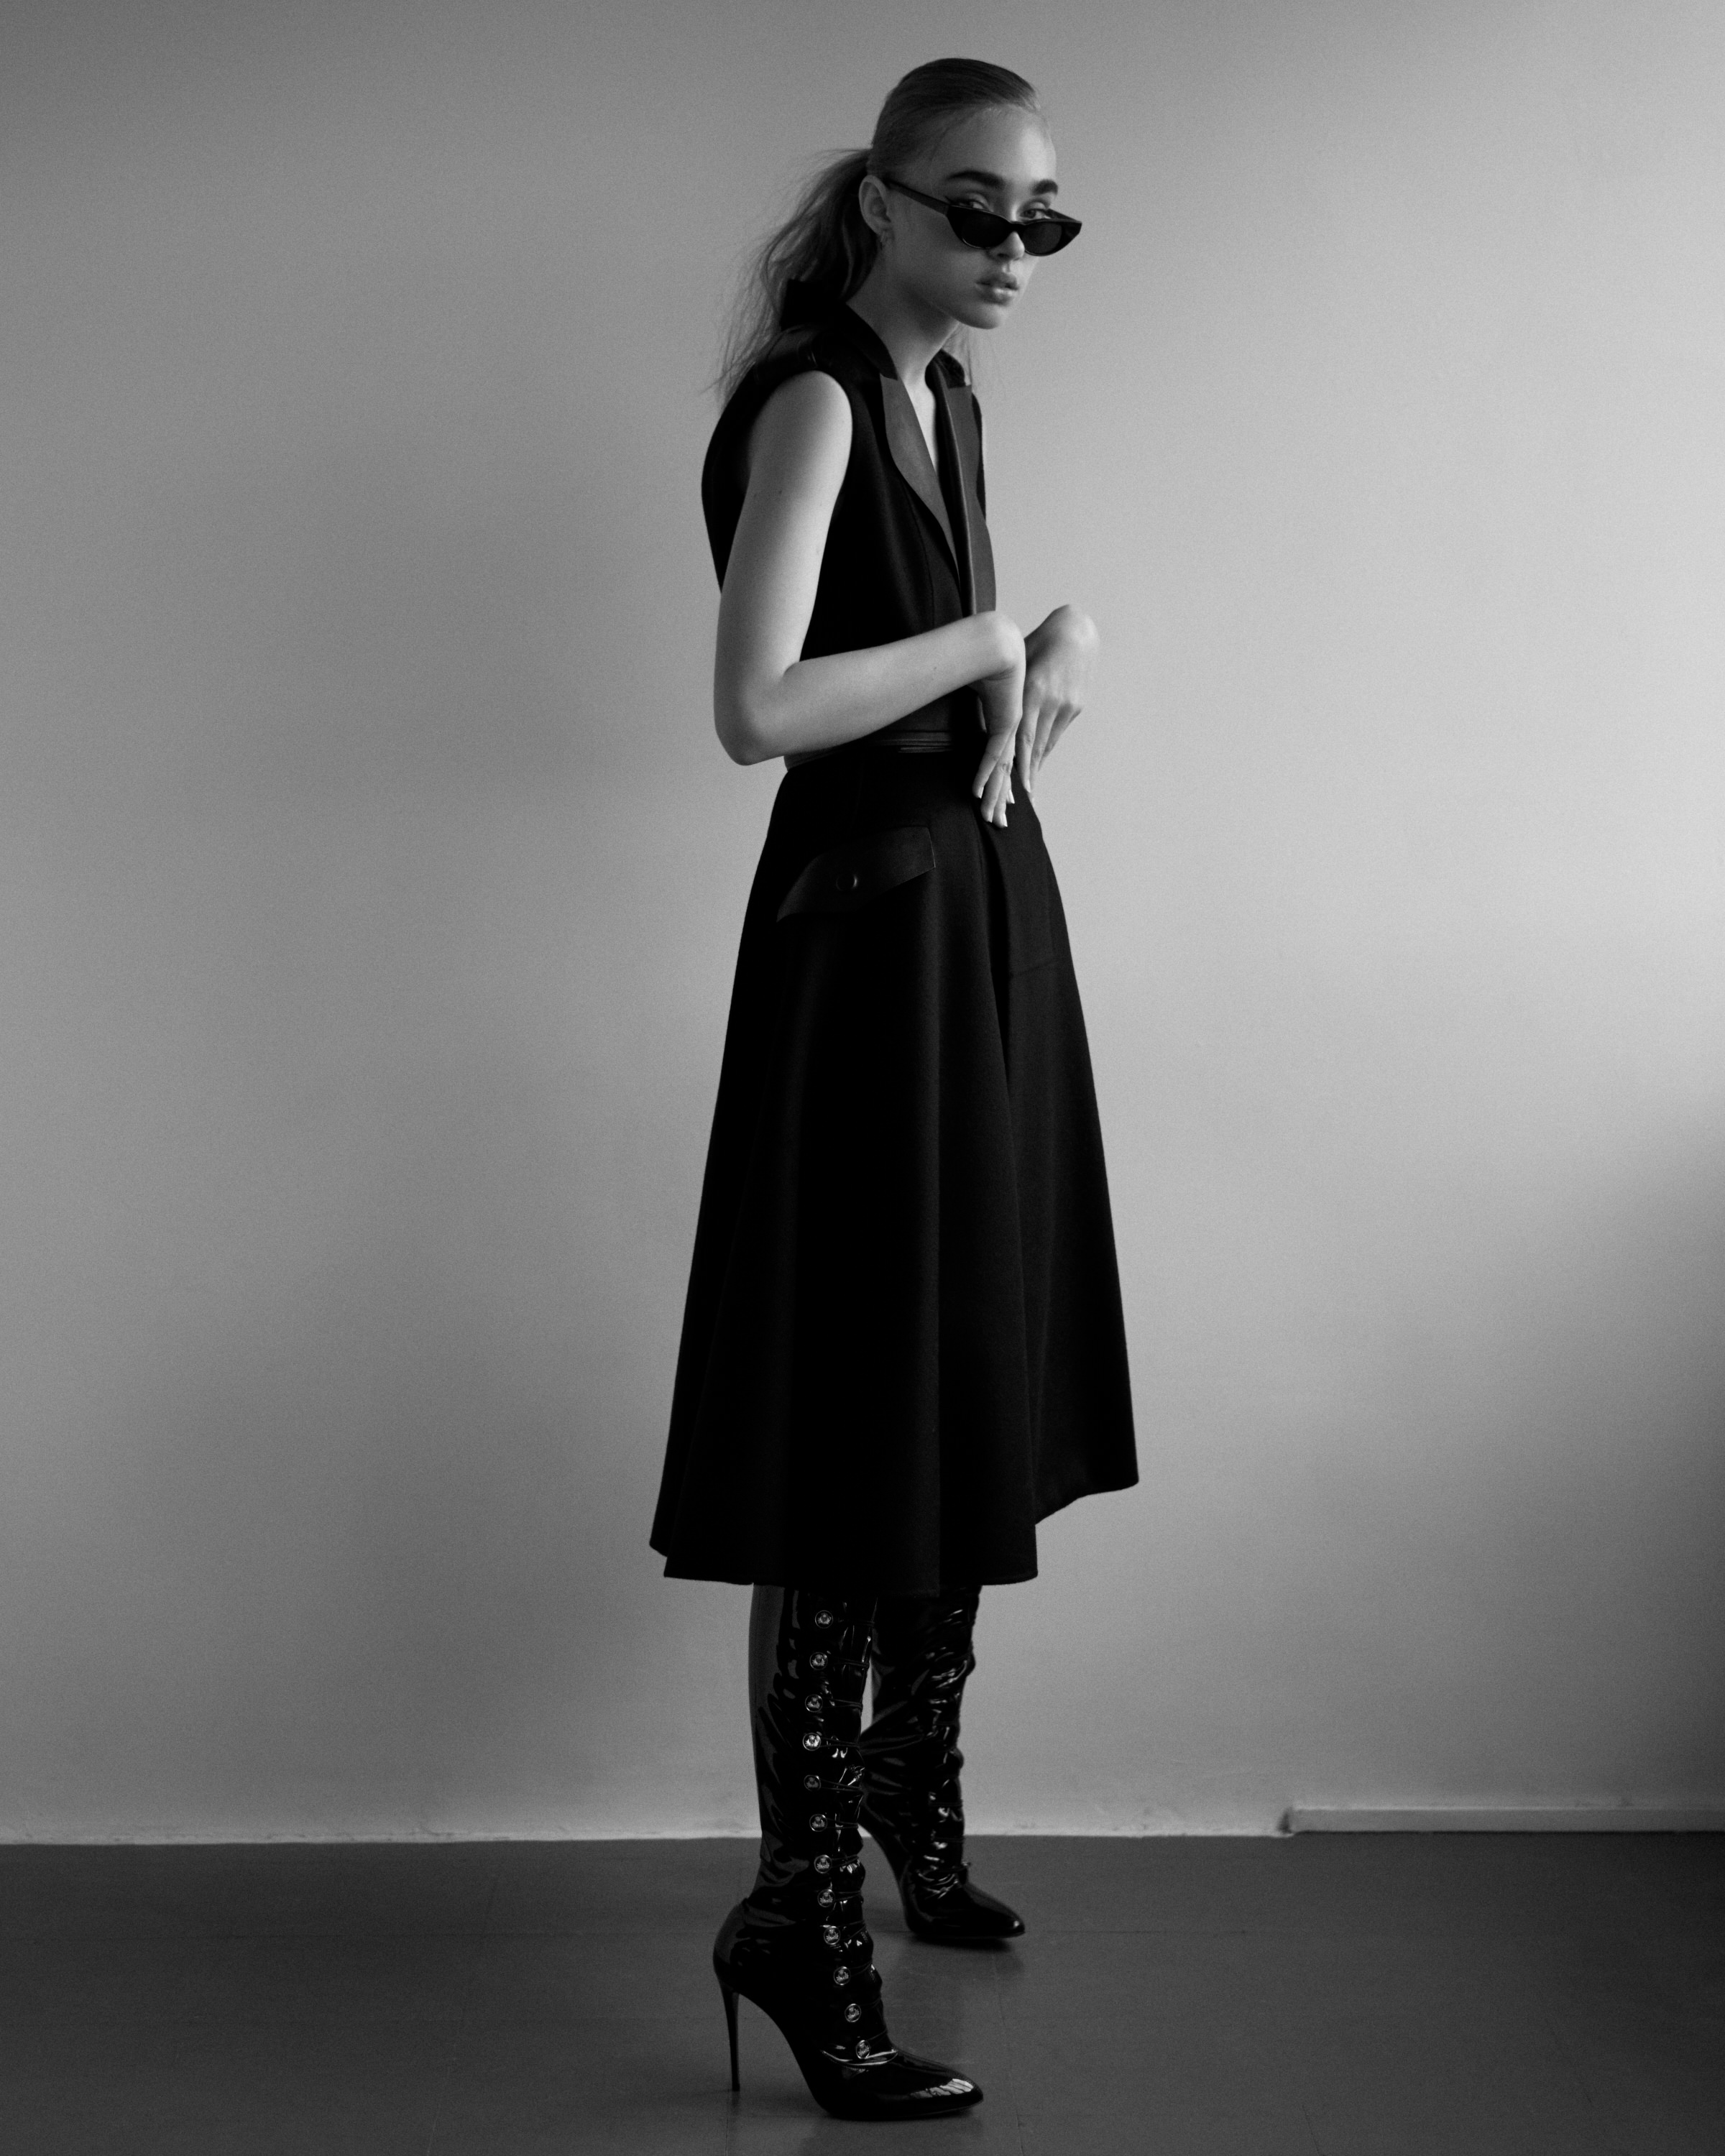 Editorial Fashion Photography For Hunger by Martin D Barker